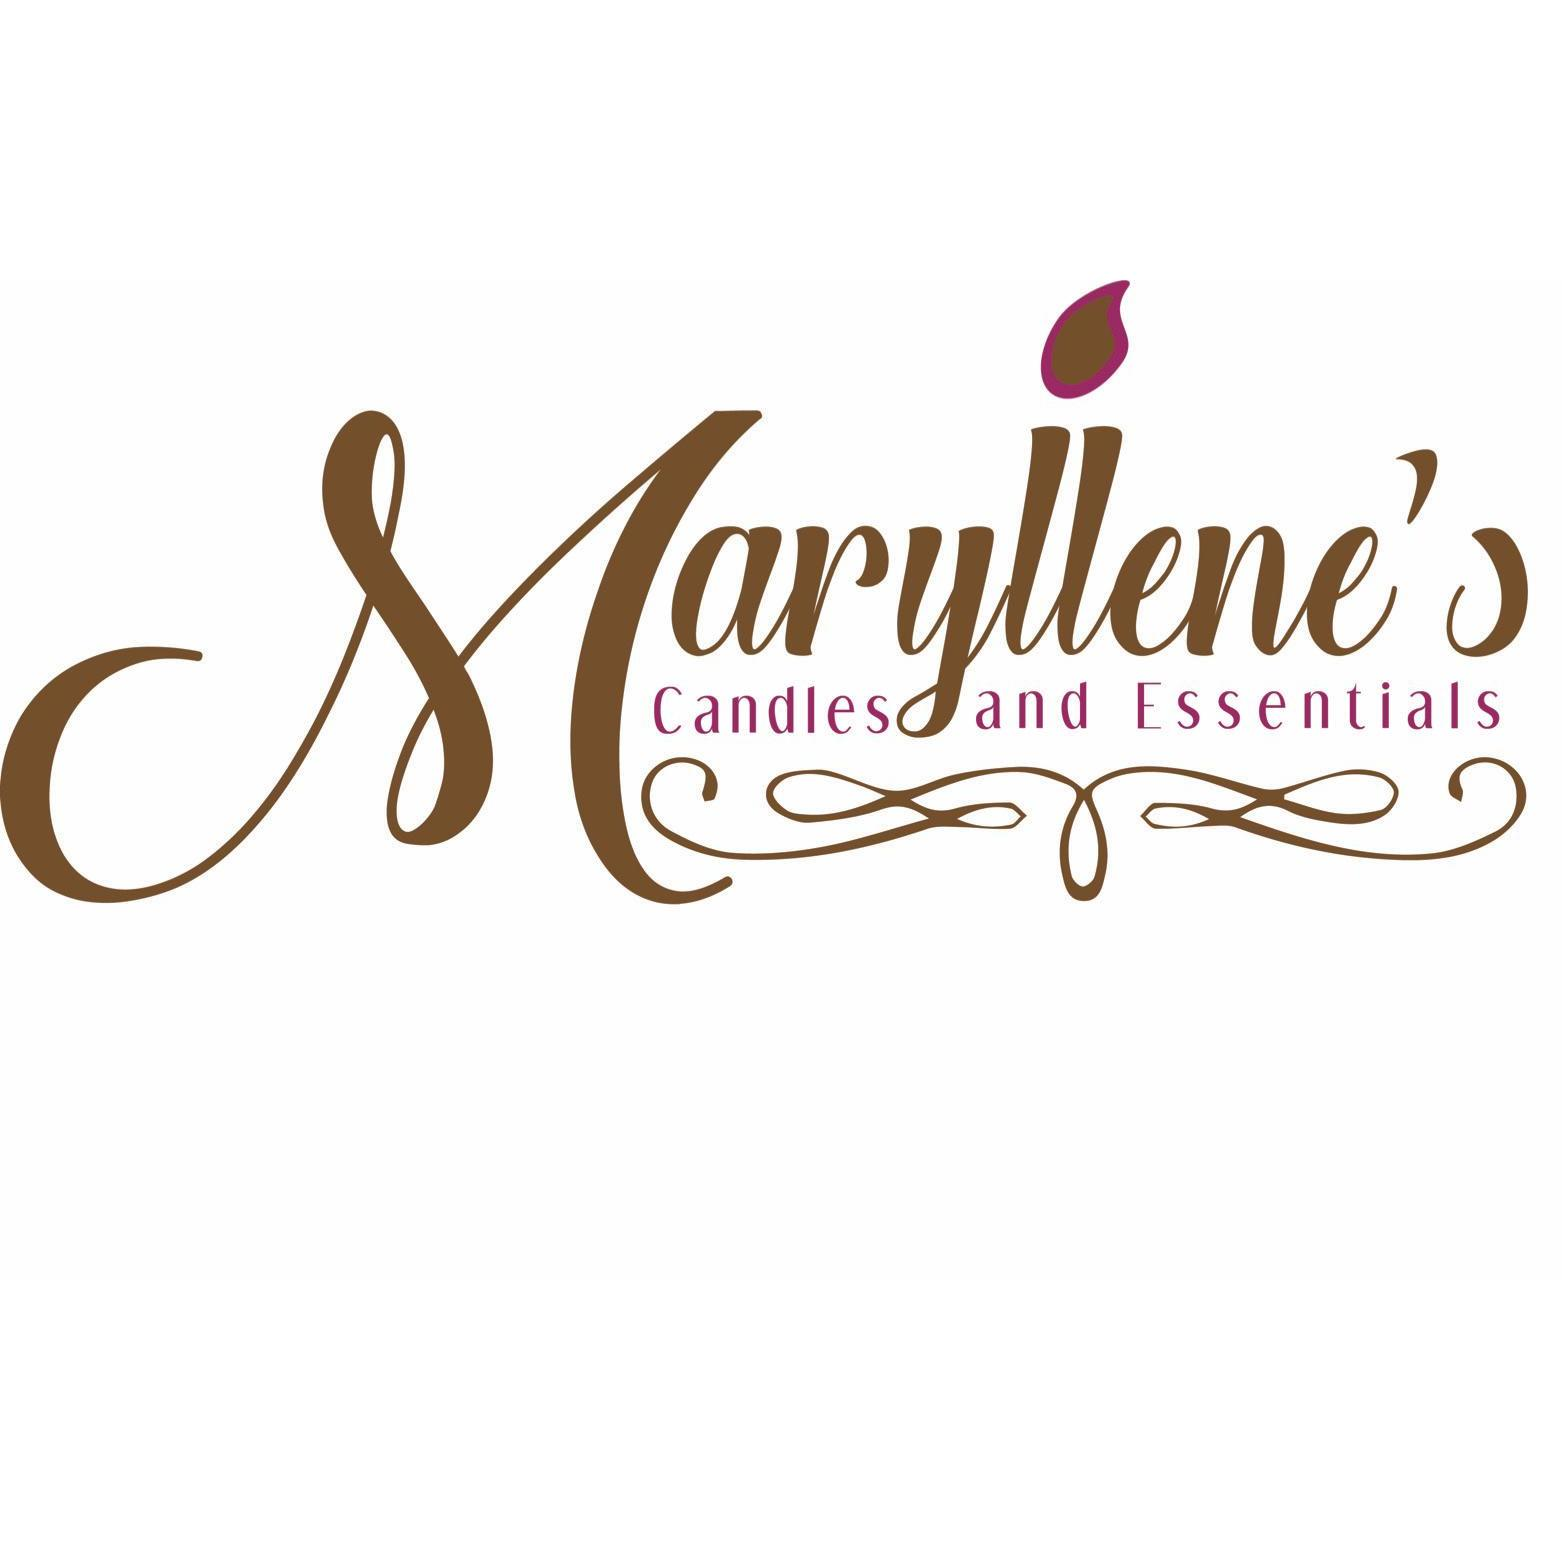 Maryllene's Candles And Essentials